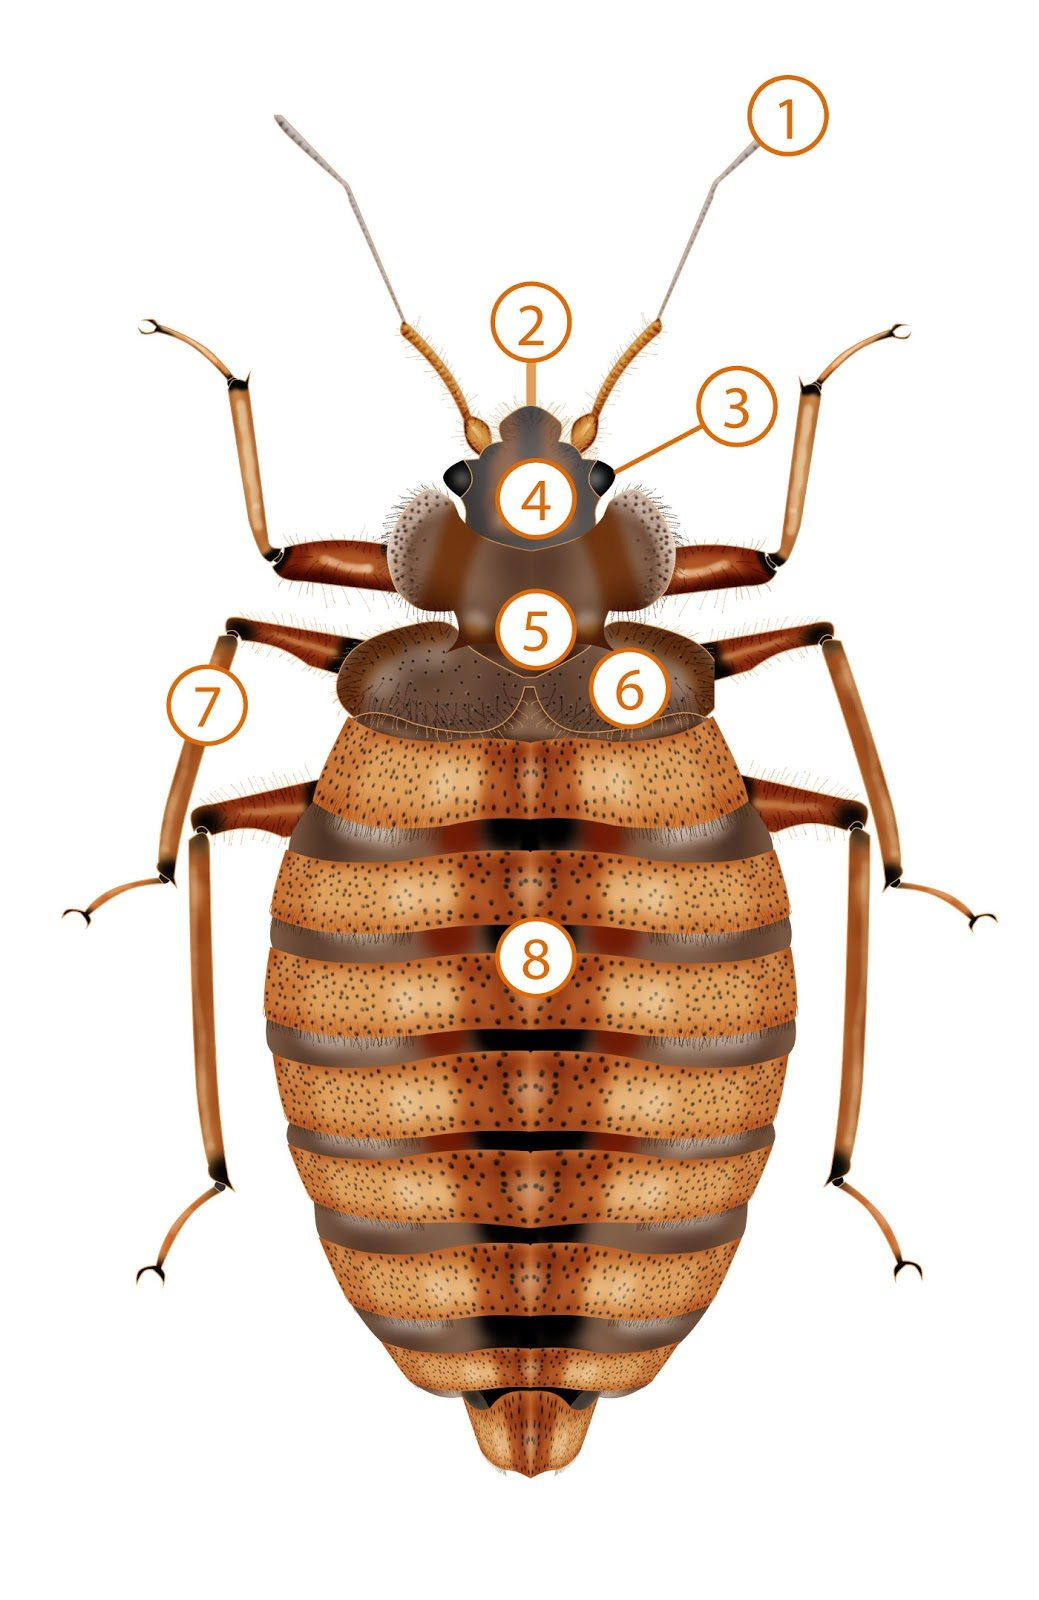 Anatomy of a Bed Bug - Pronto Pest Management